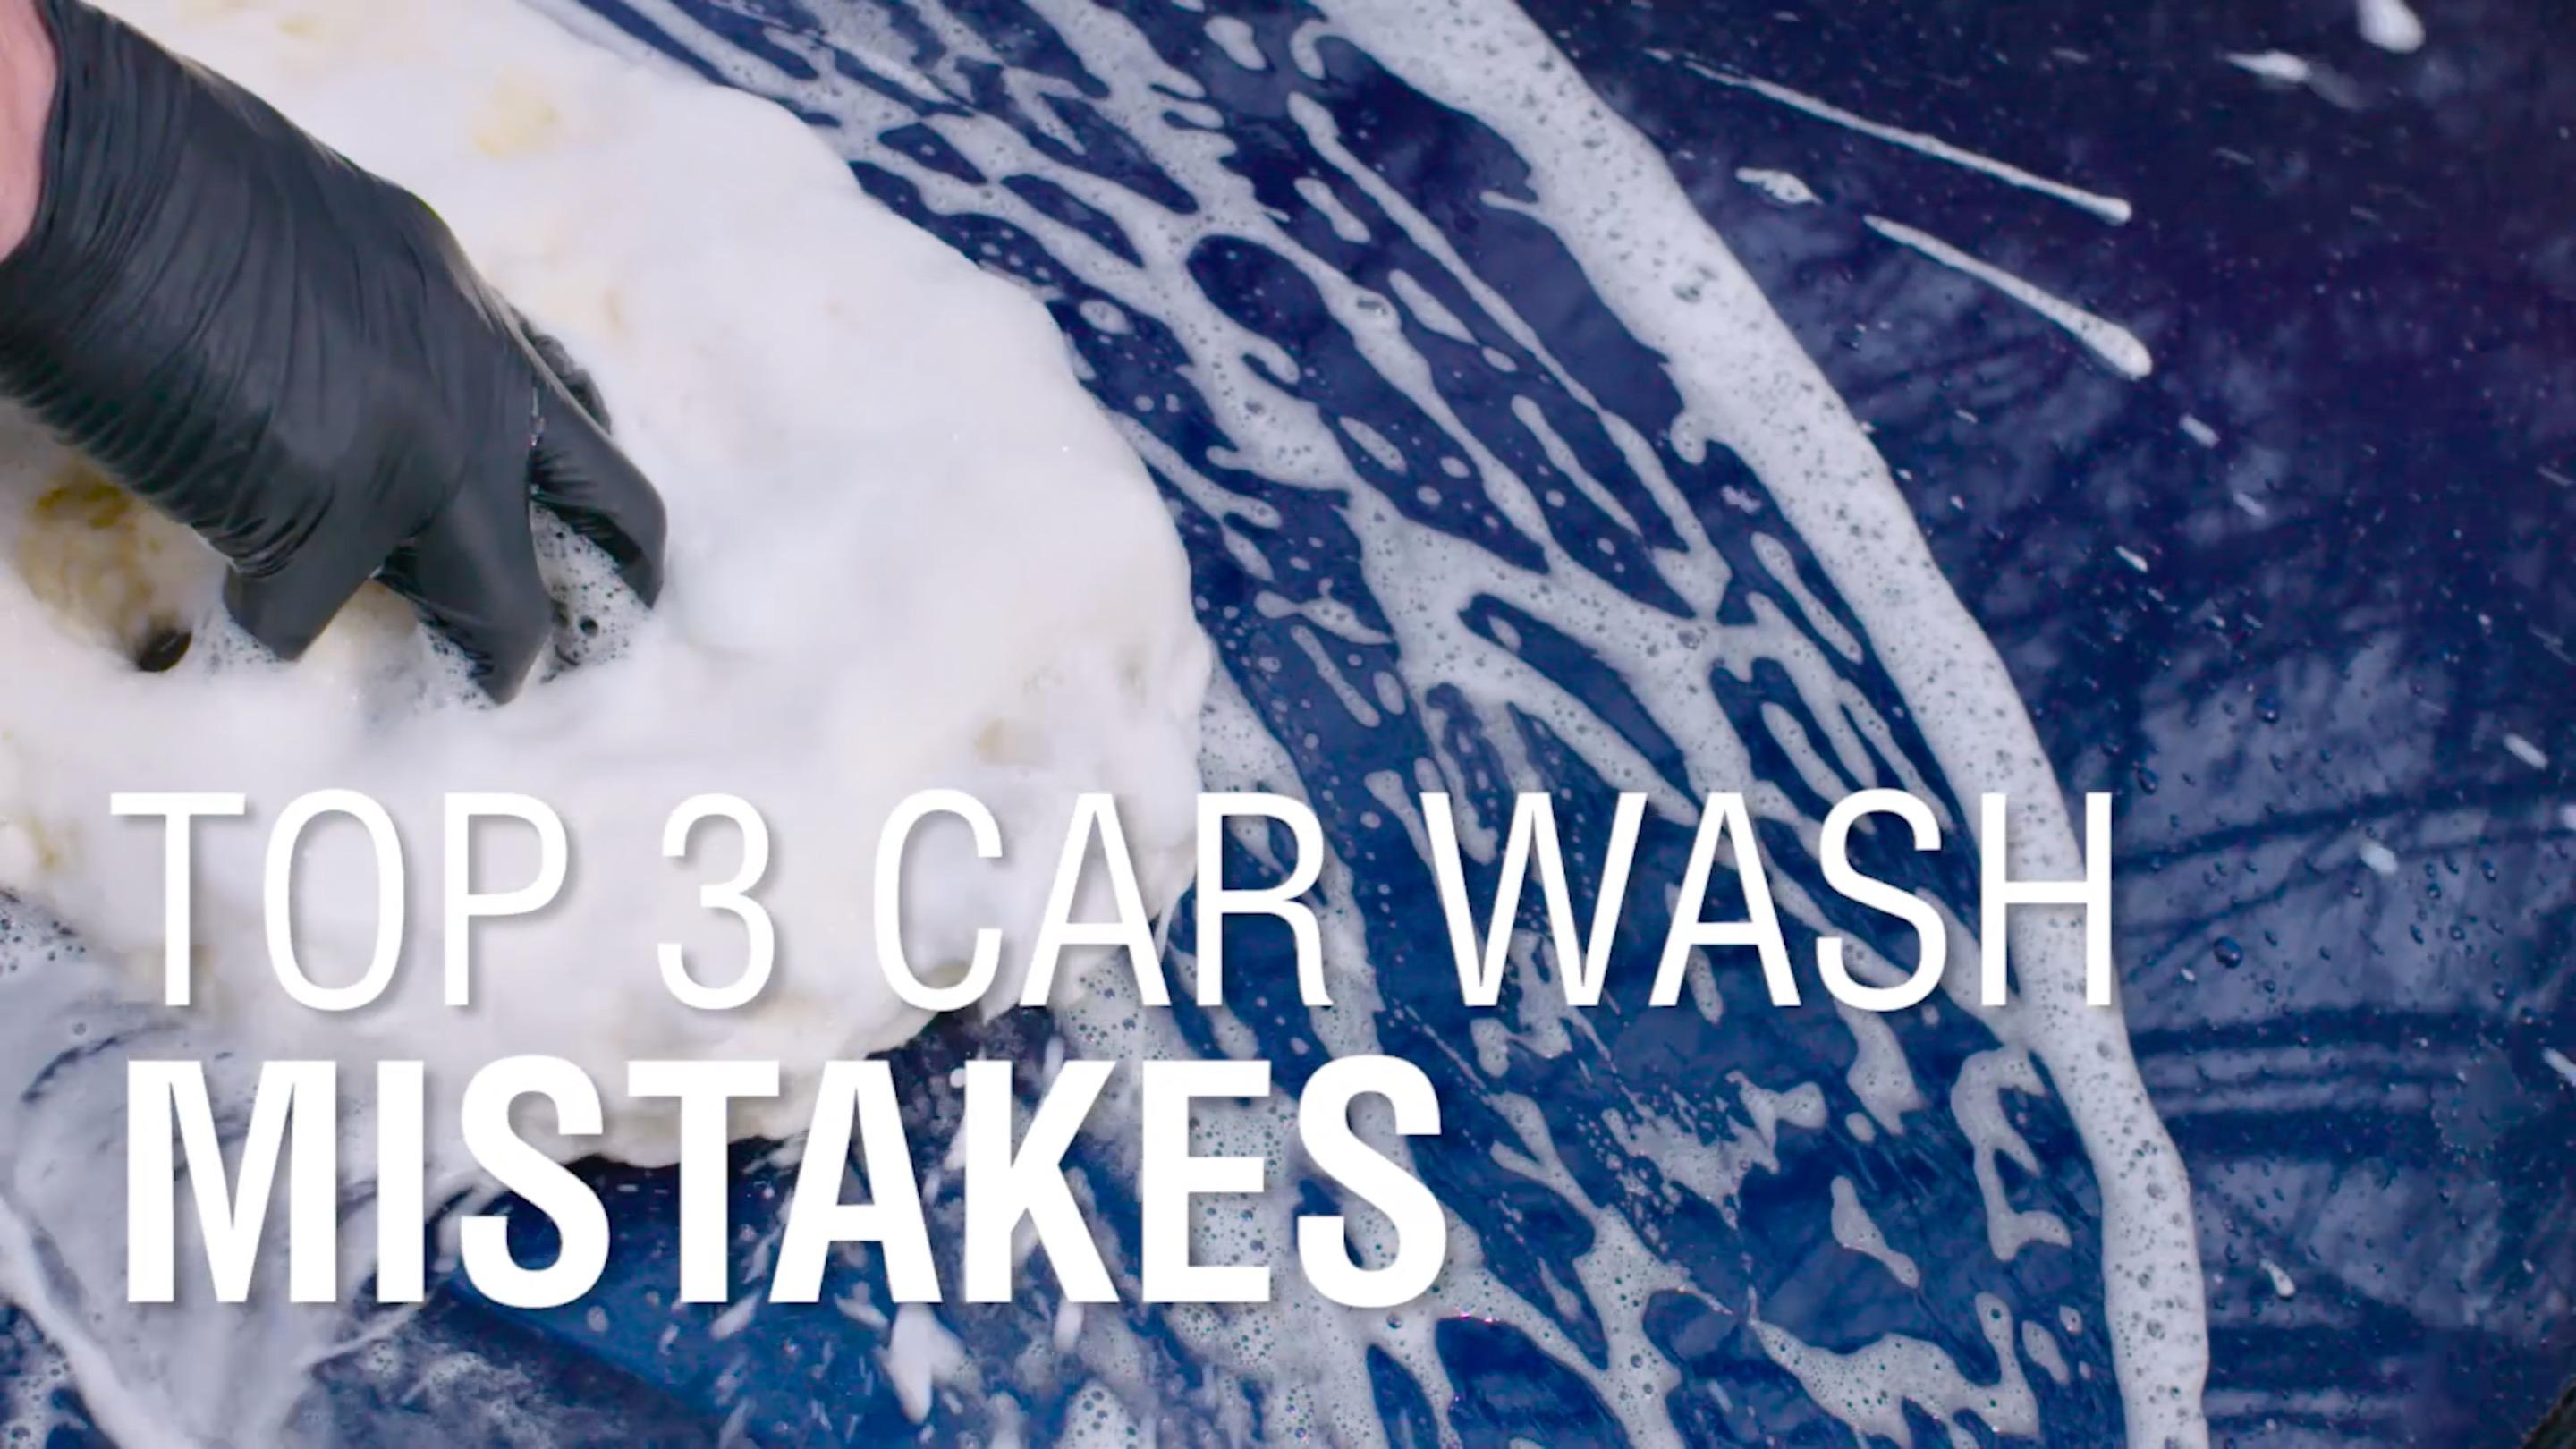 Car wash basics: things you must know before spending money | Autoblog